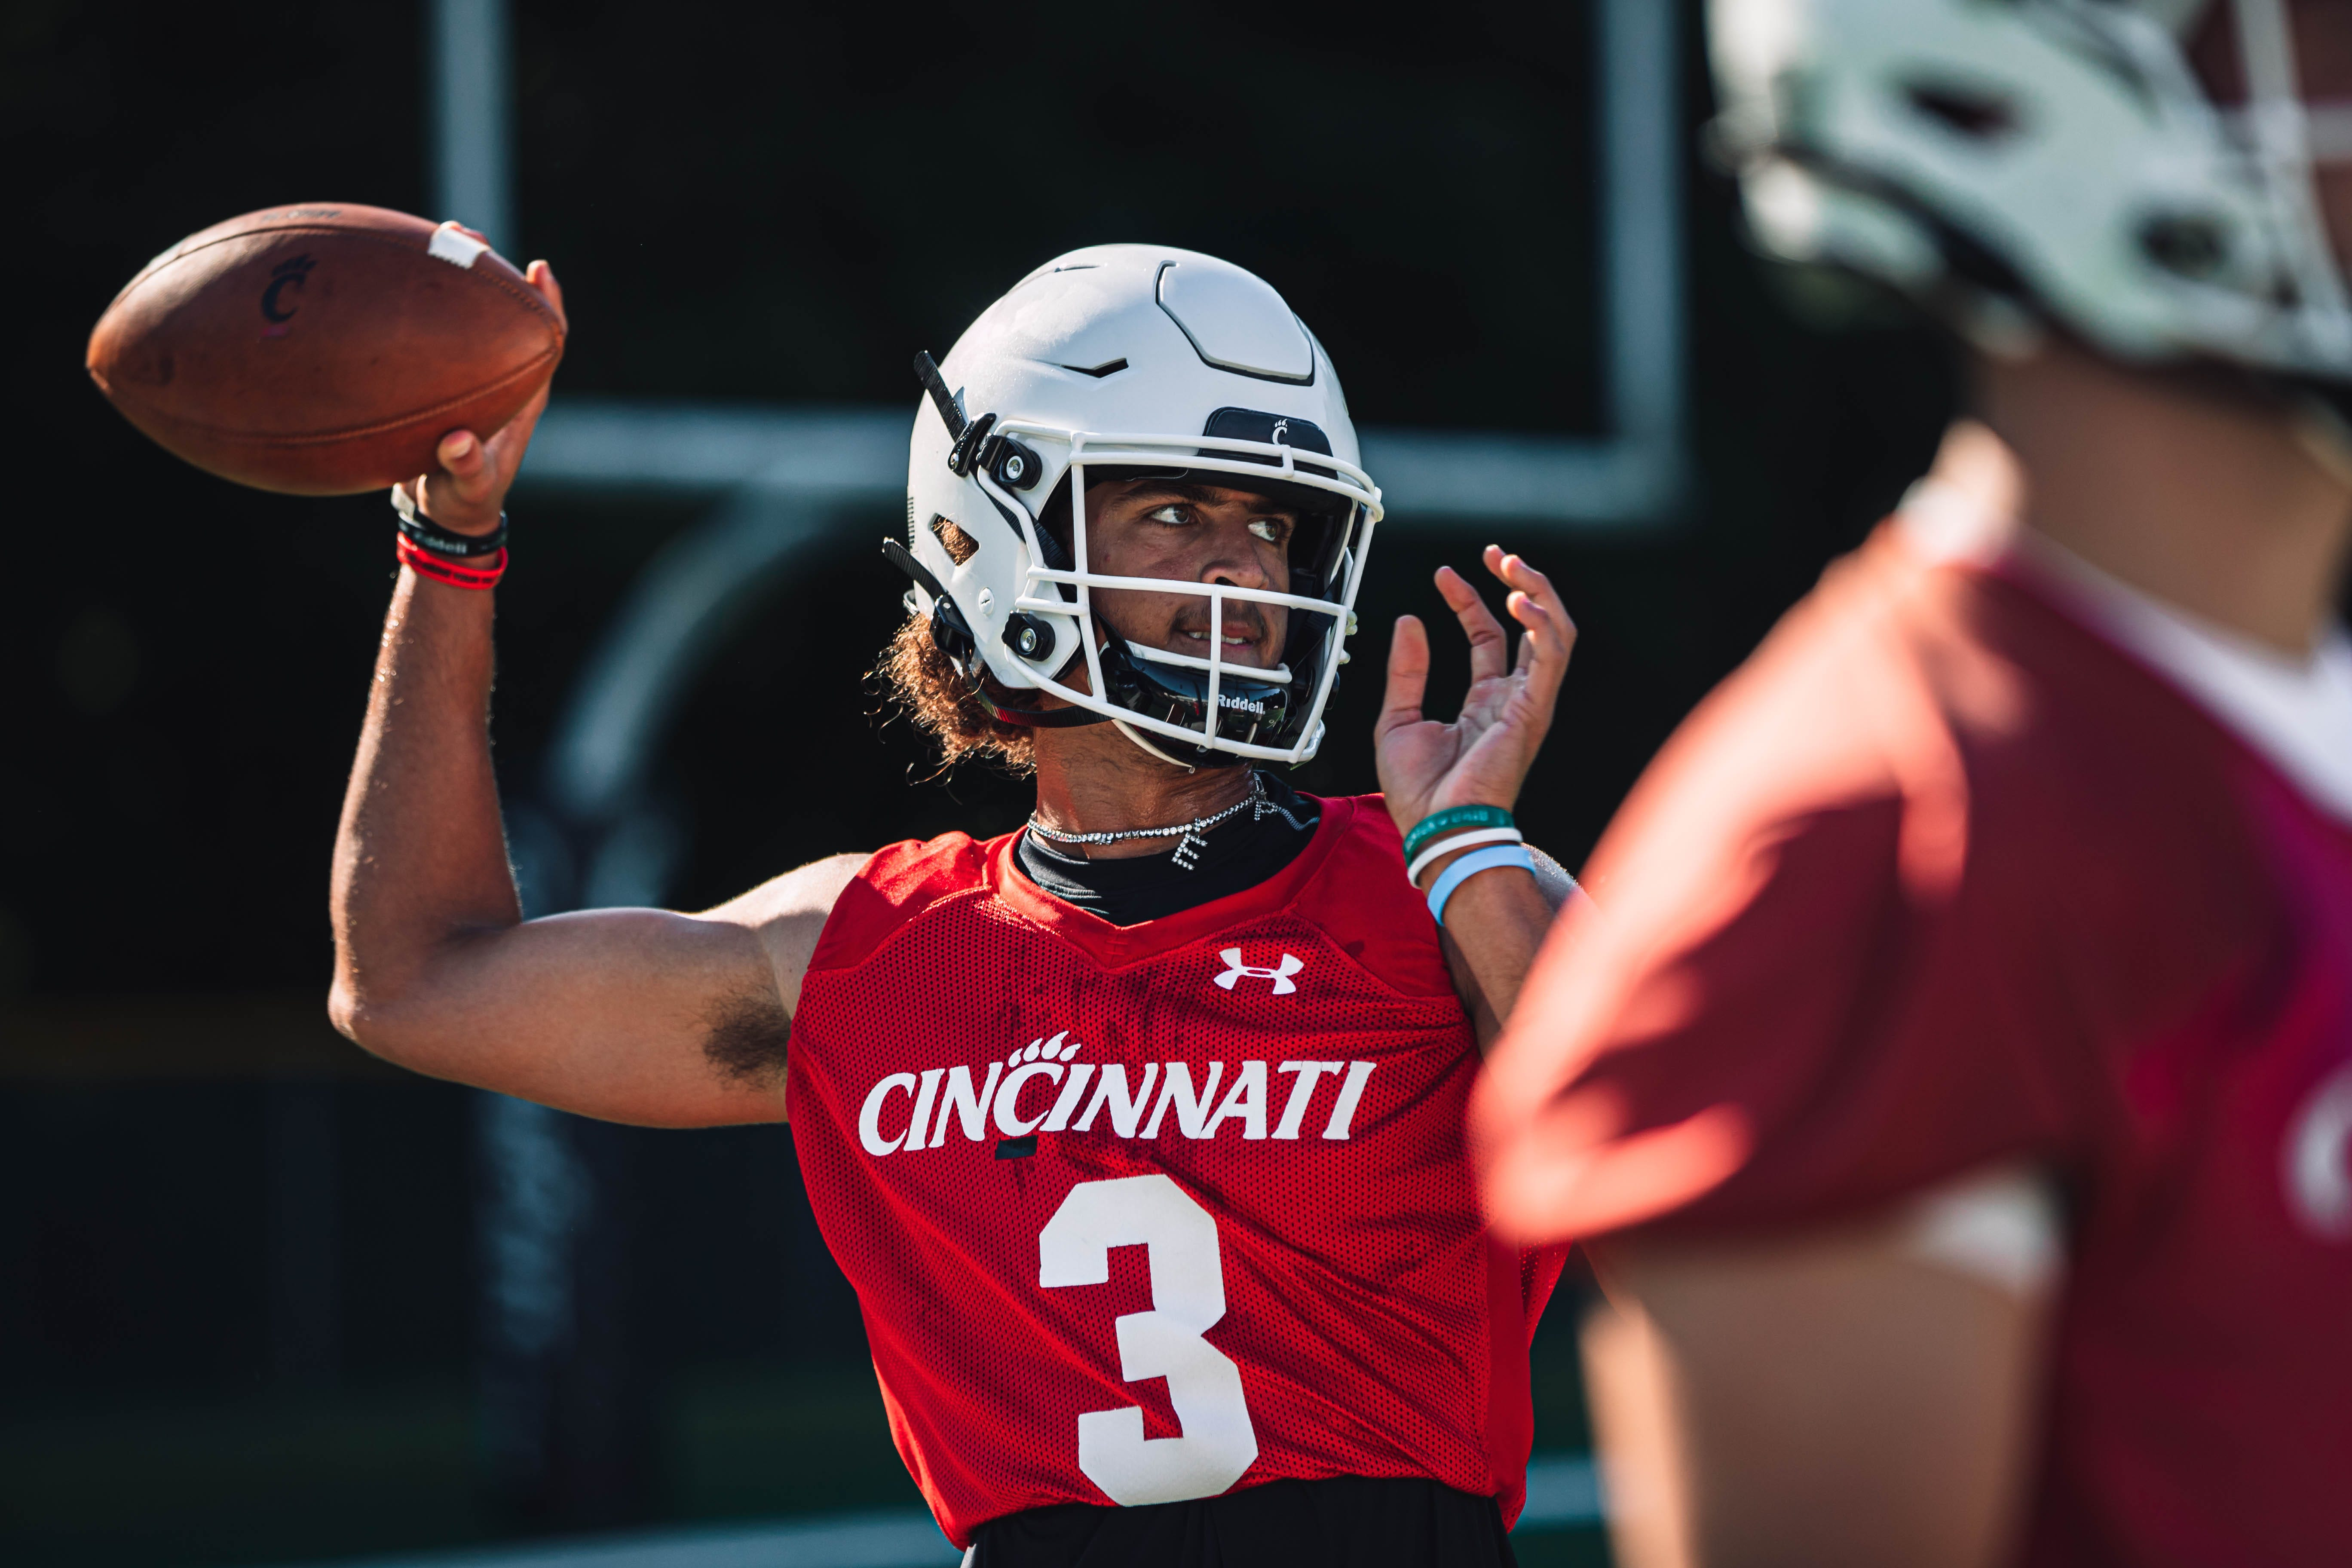 Chad Bowden S Crazy Ideas Paying Off For Uc Football